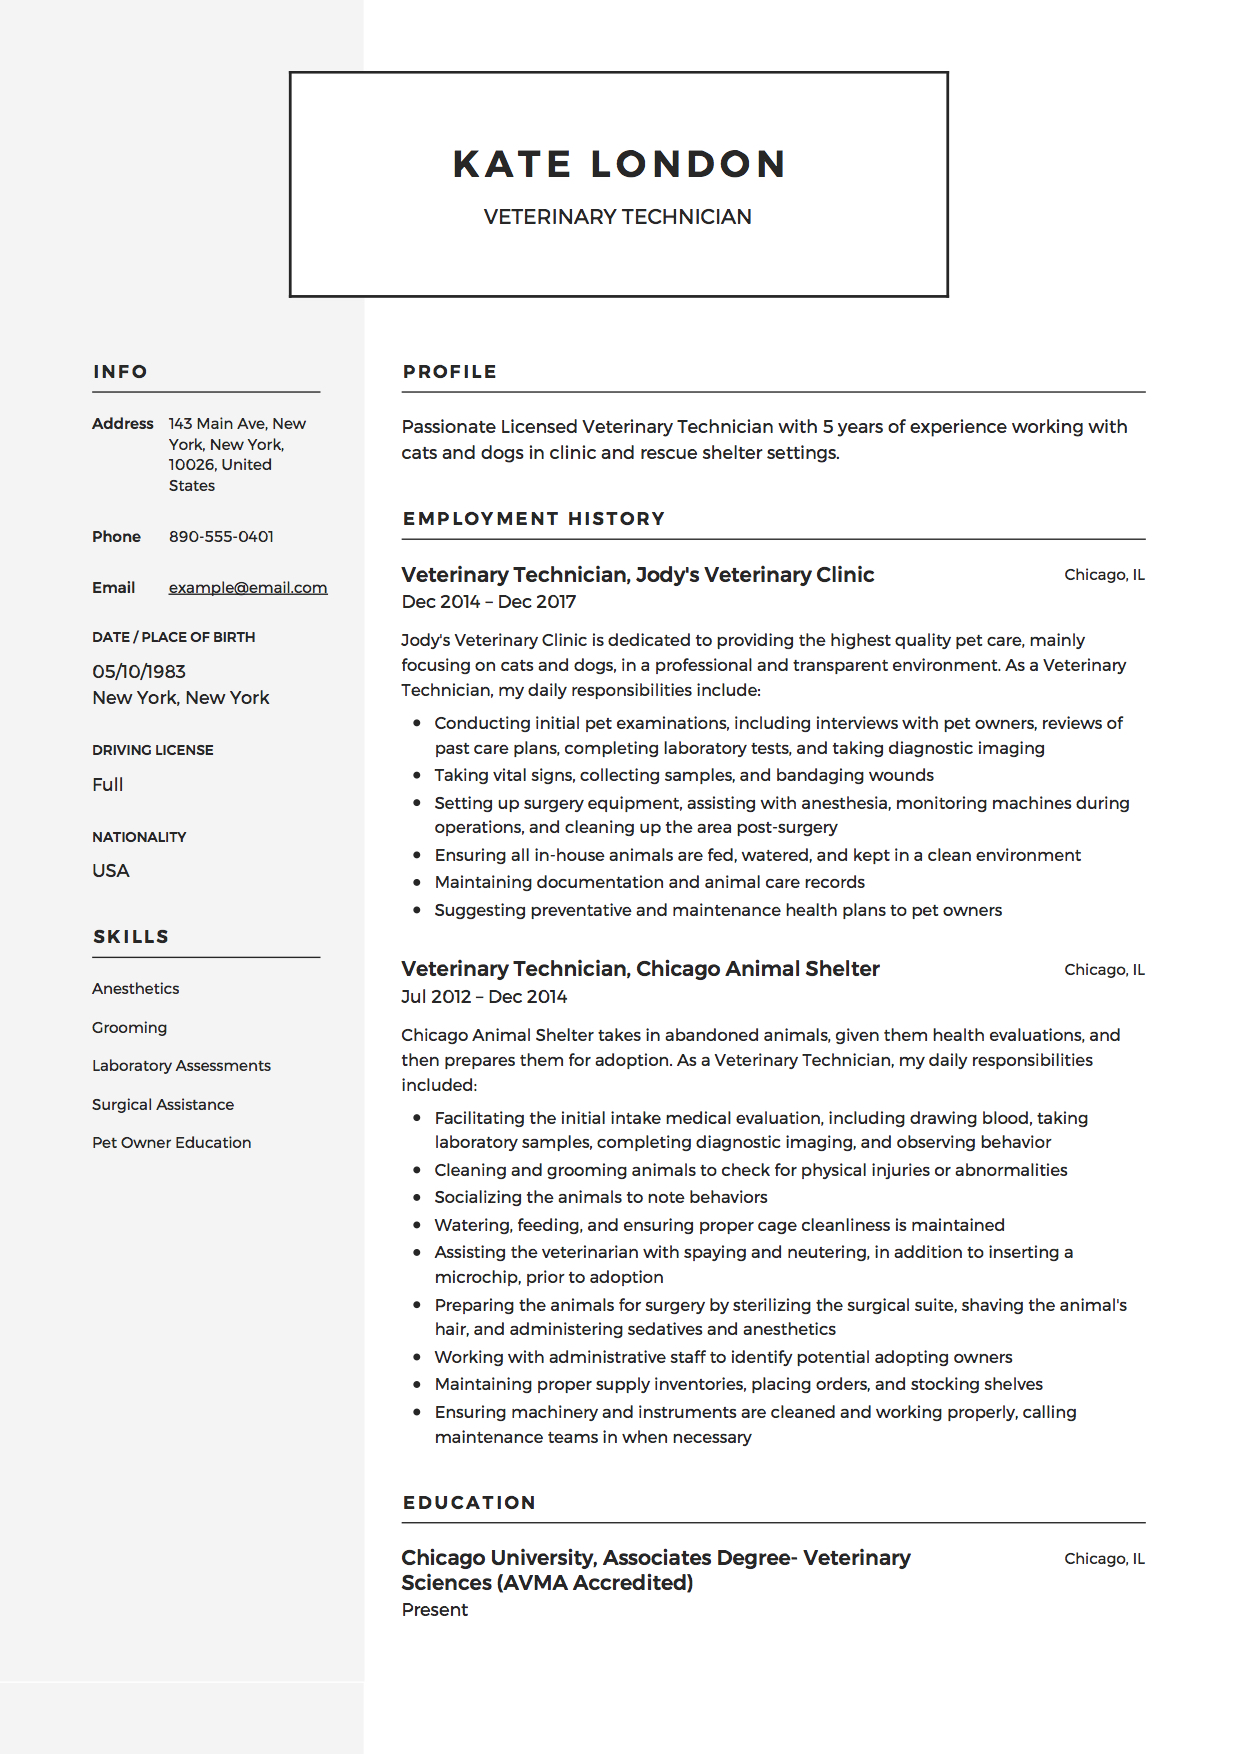 Veterinary Technician Resume Example